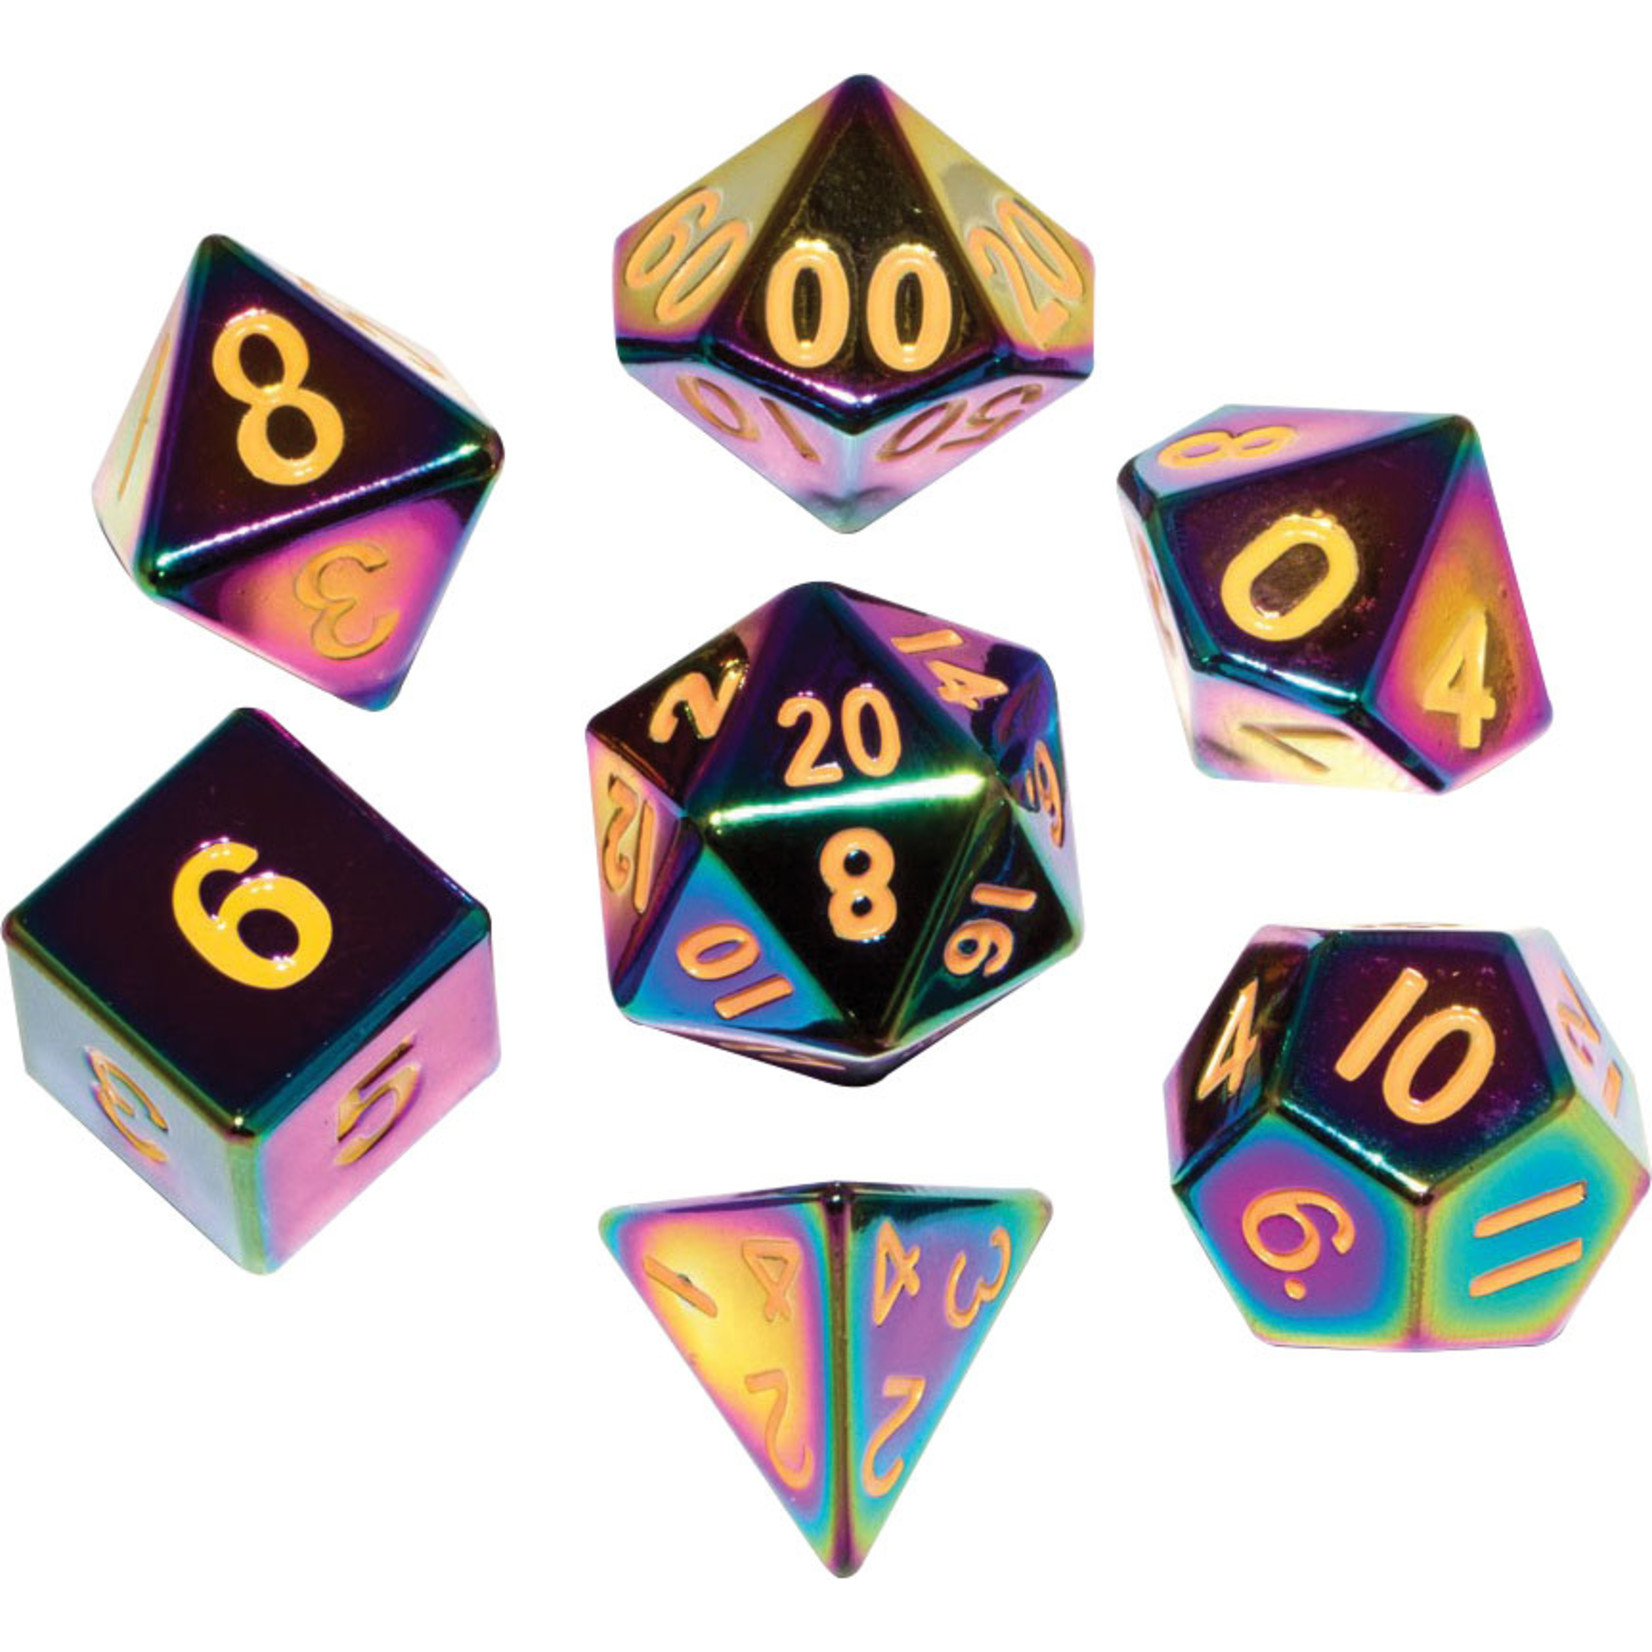 16mm Flame Torched Rainbow Metal Polyhedral Dice Set